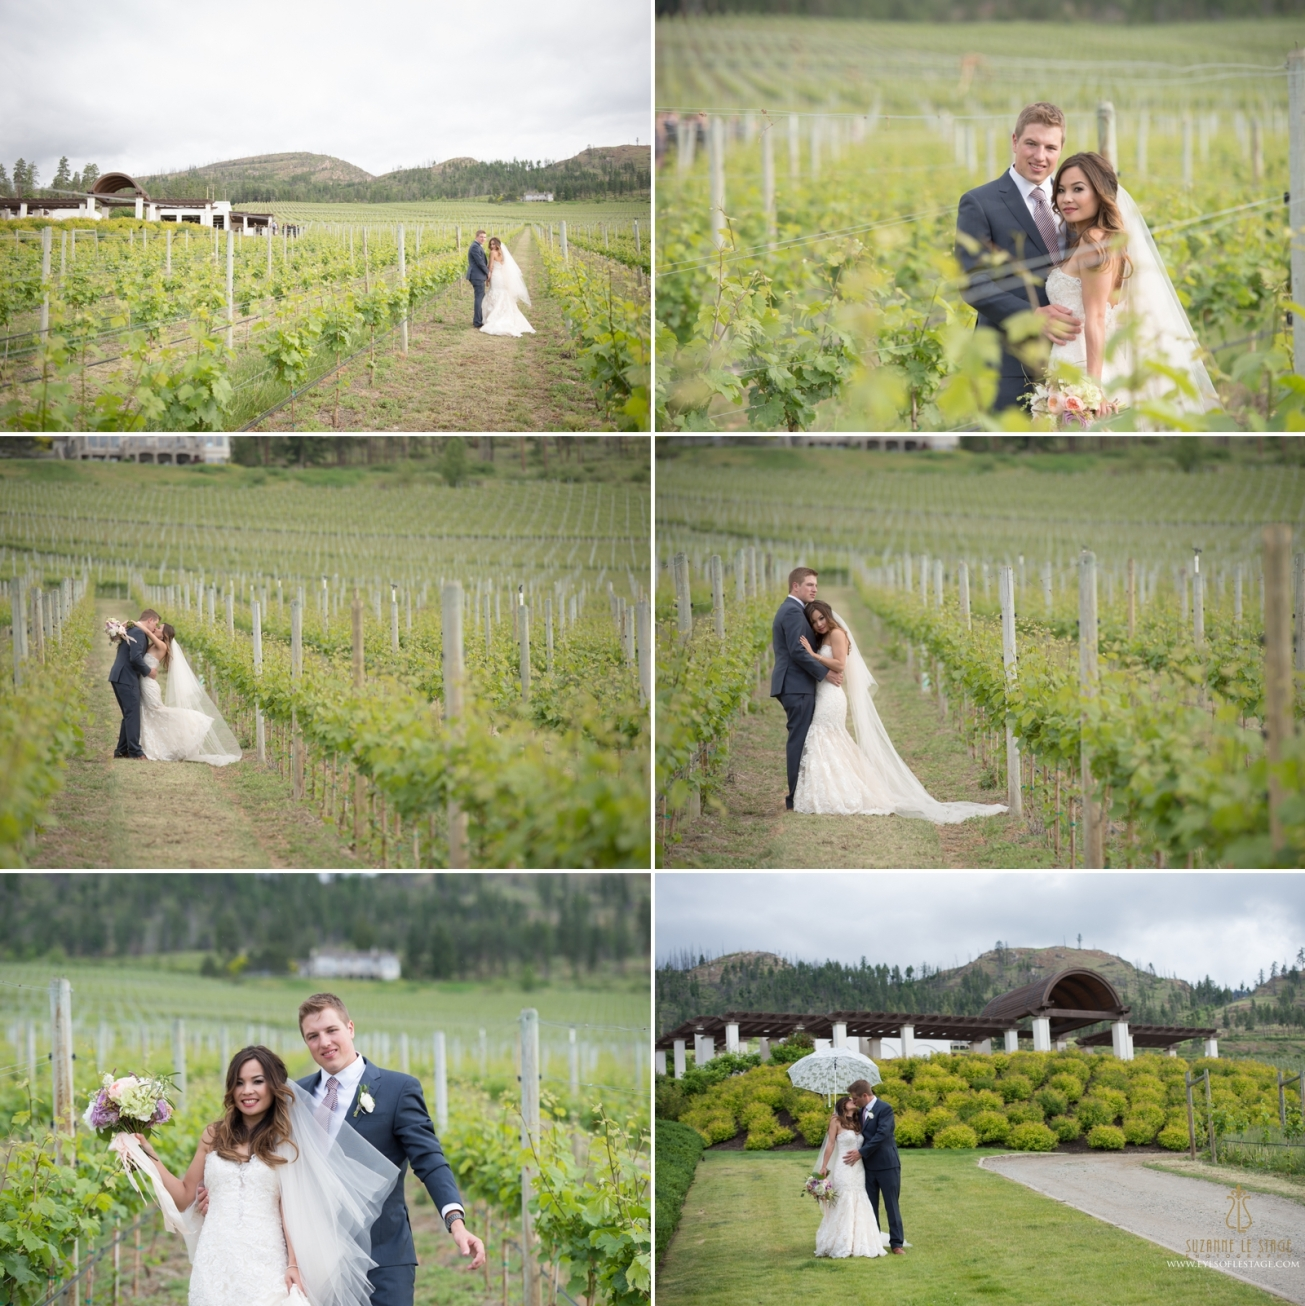 Cedar Creek Winery Wedding - Kelowna Okanagan Photography - Suzanne Le Stage 12